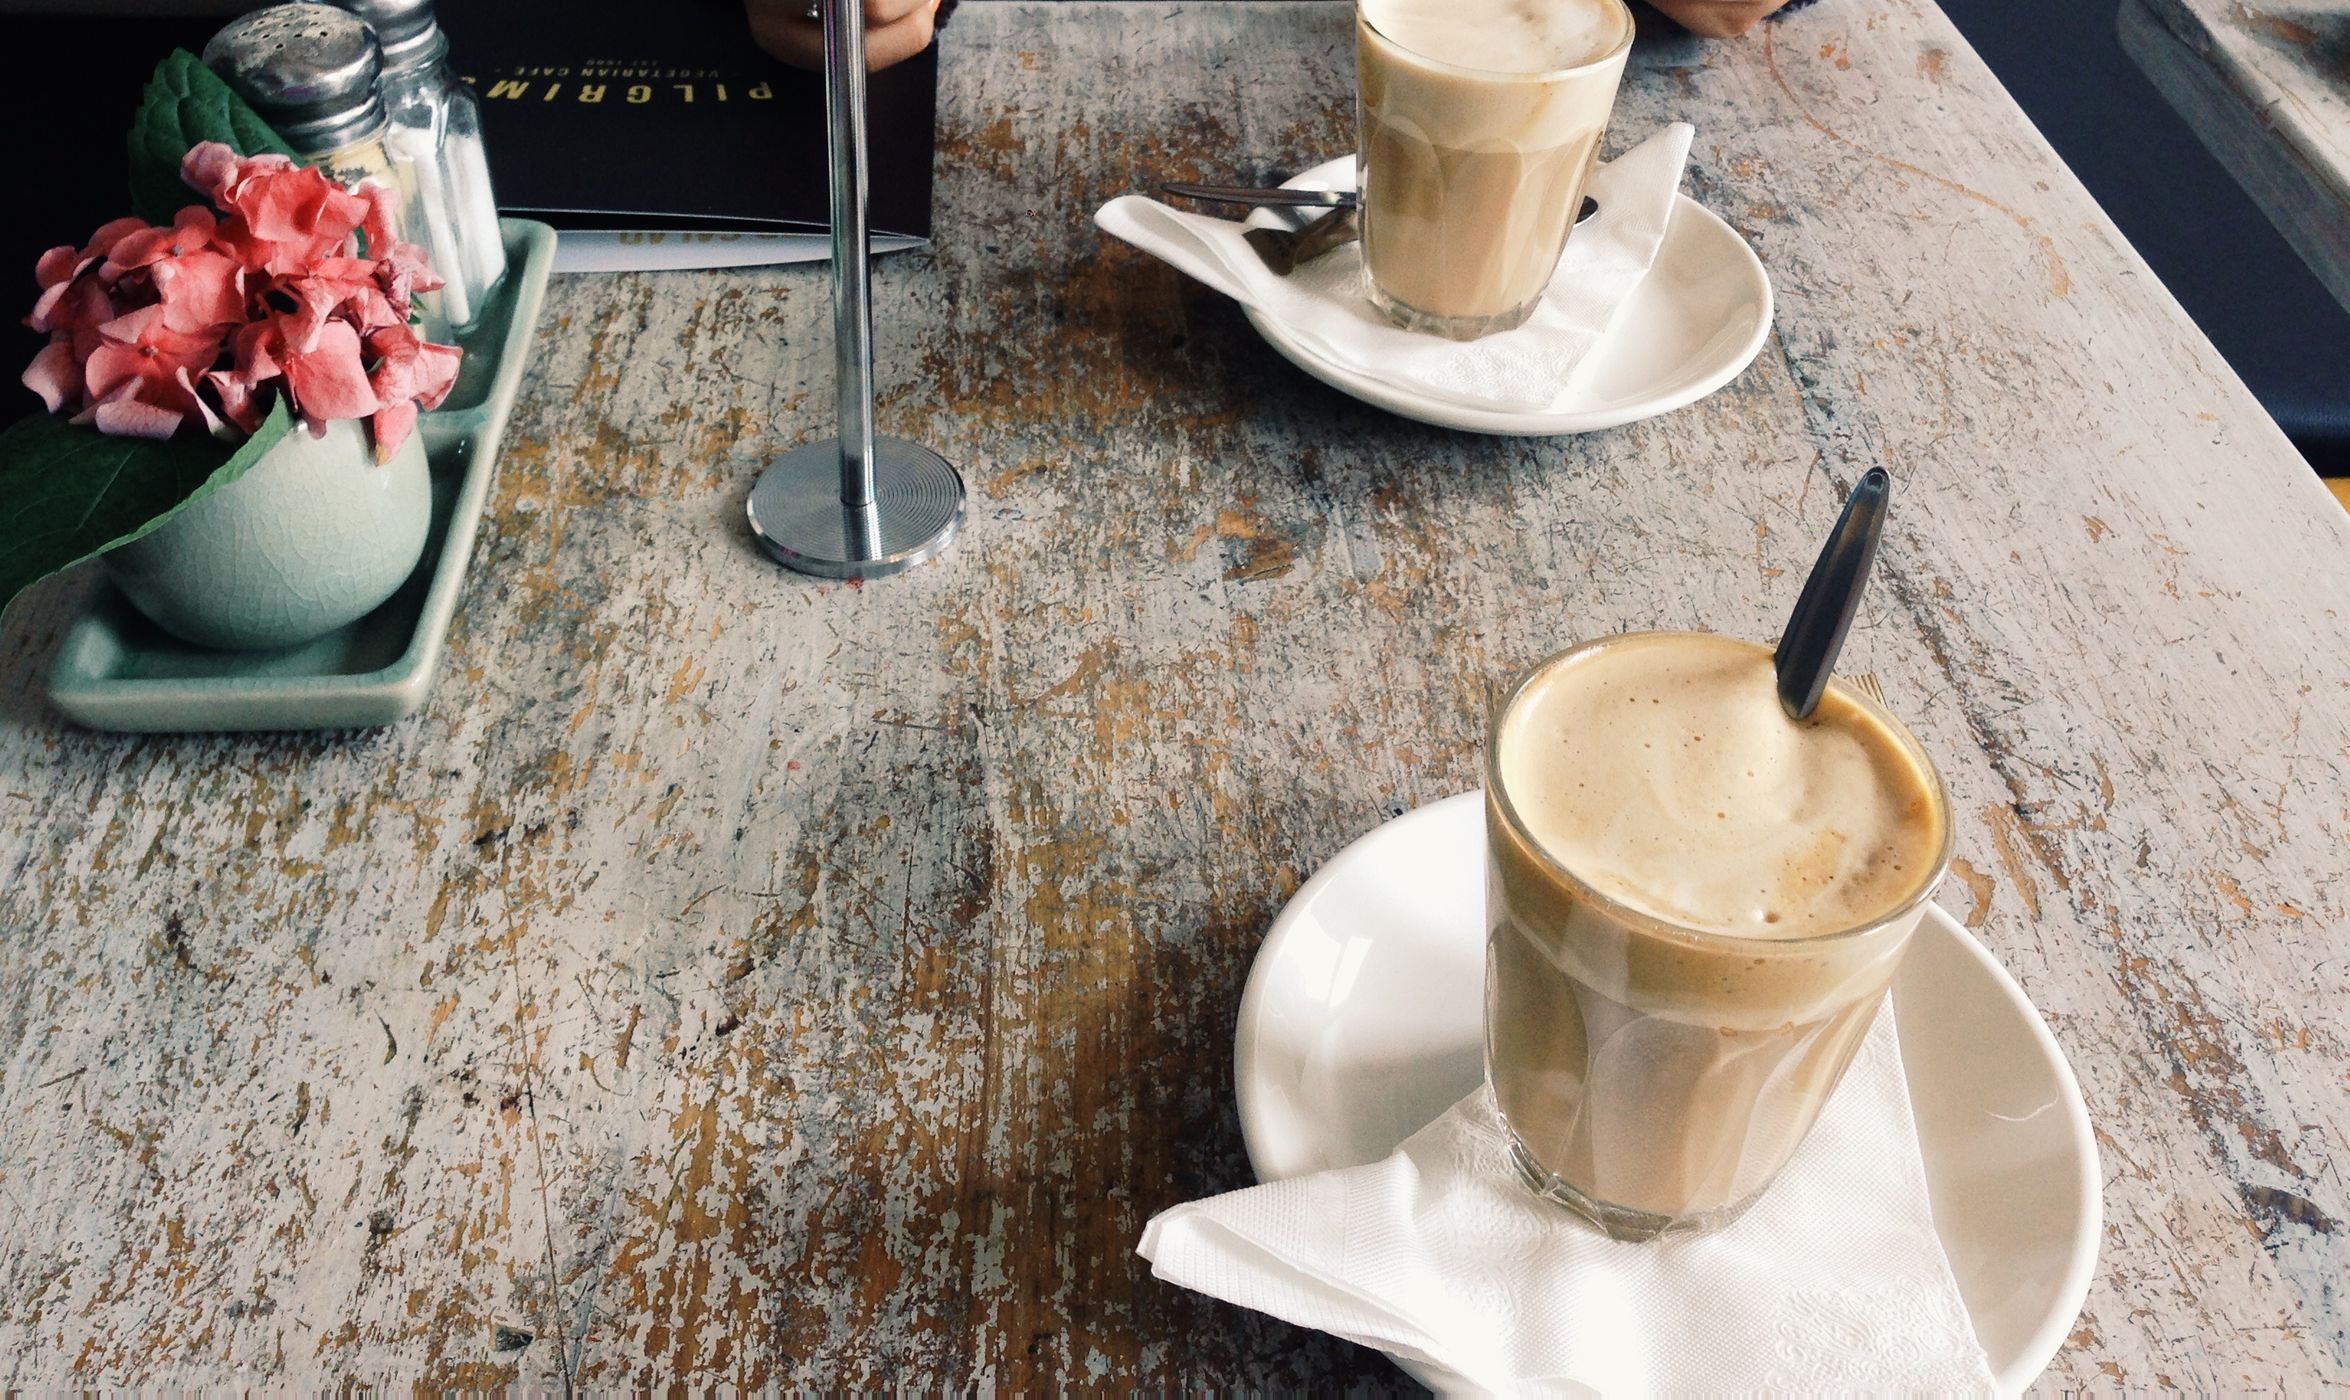 Cafes.  Approximately  77%  of Americans drink coffee everyday. There are an estimated  50,000  cafes (and tip jars) in the US.